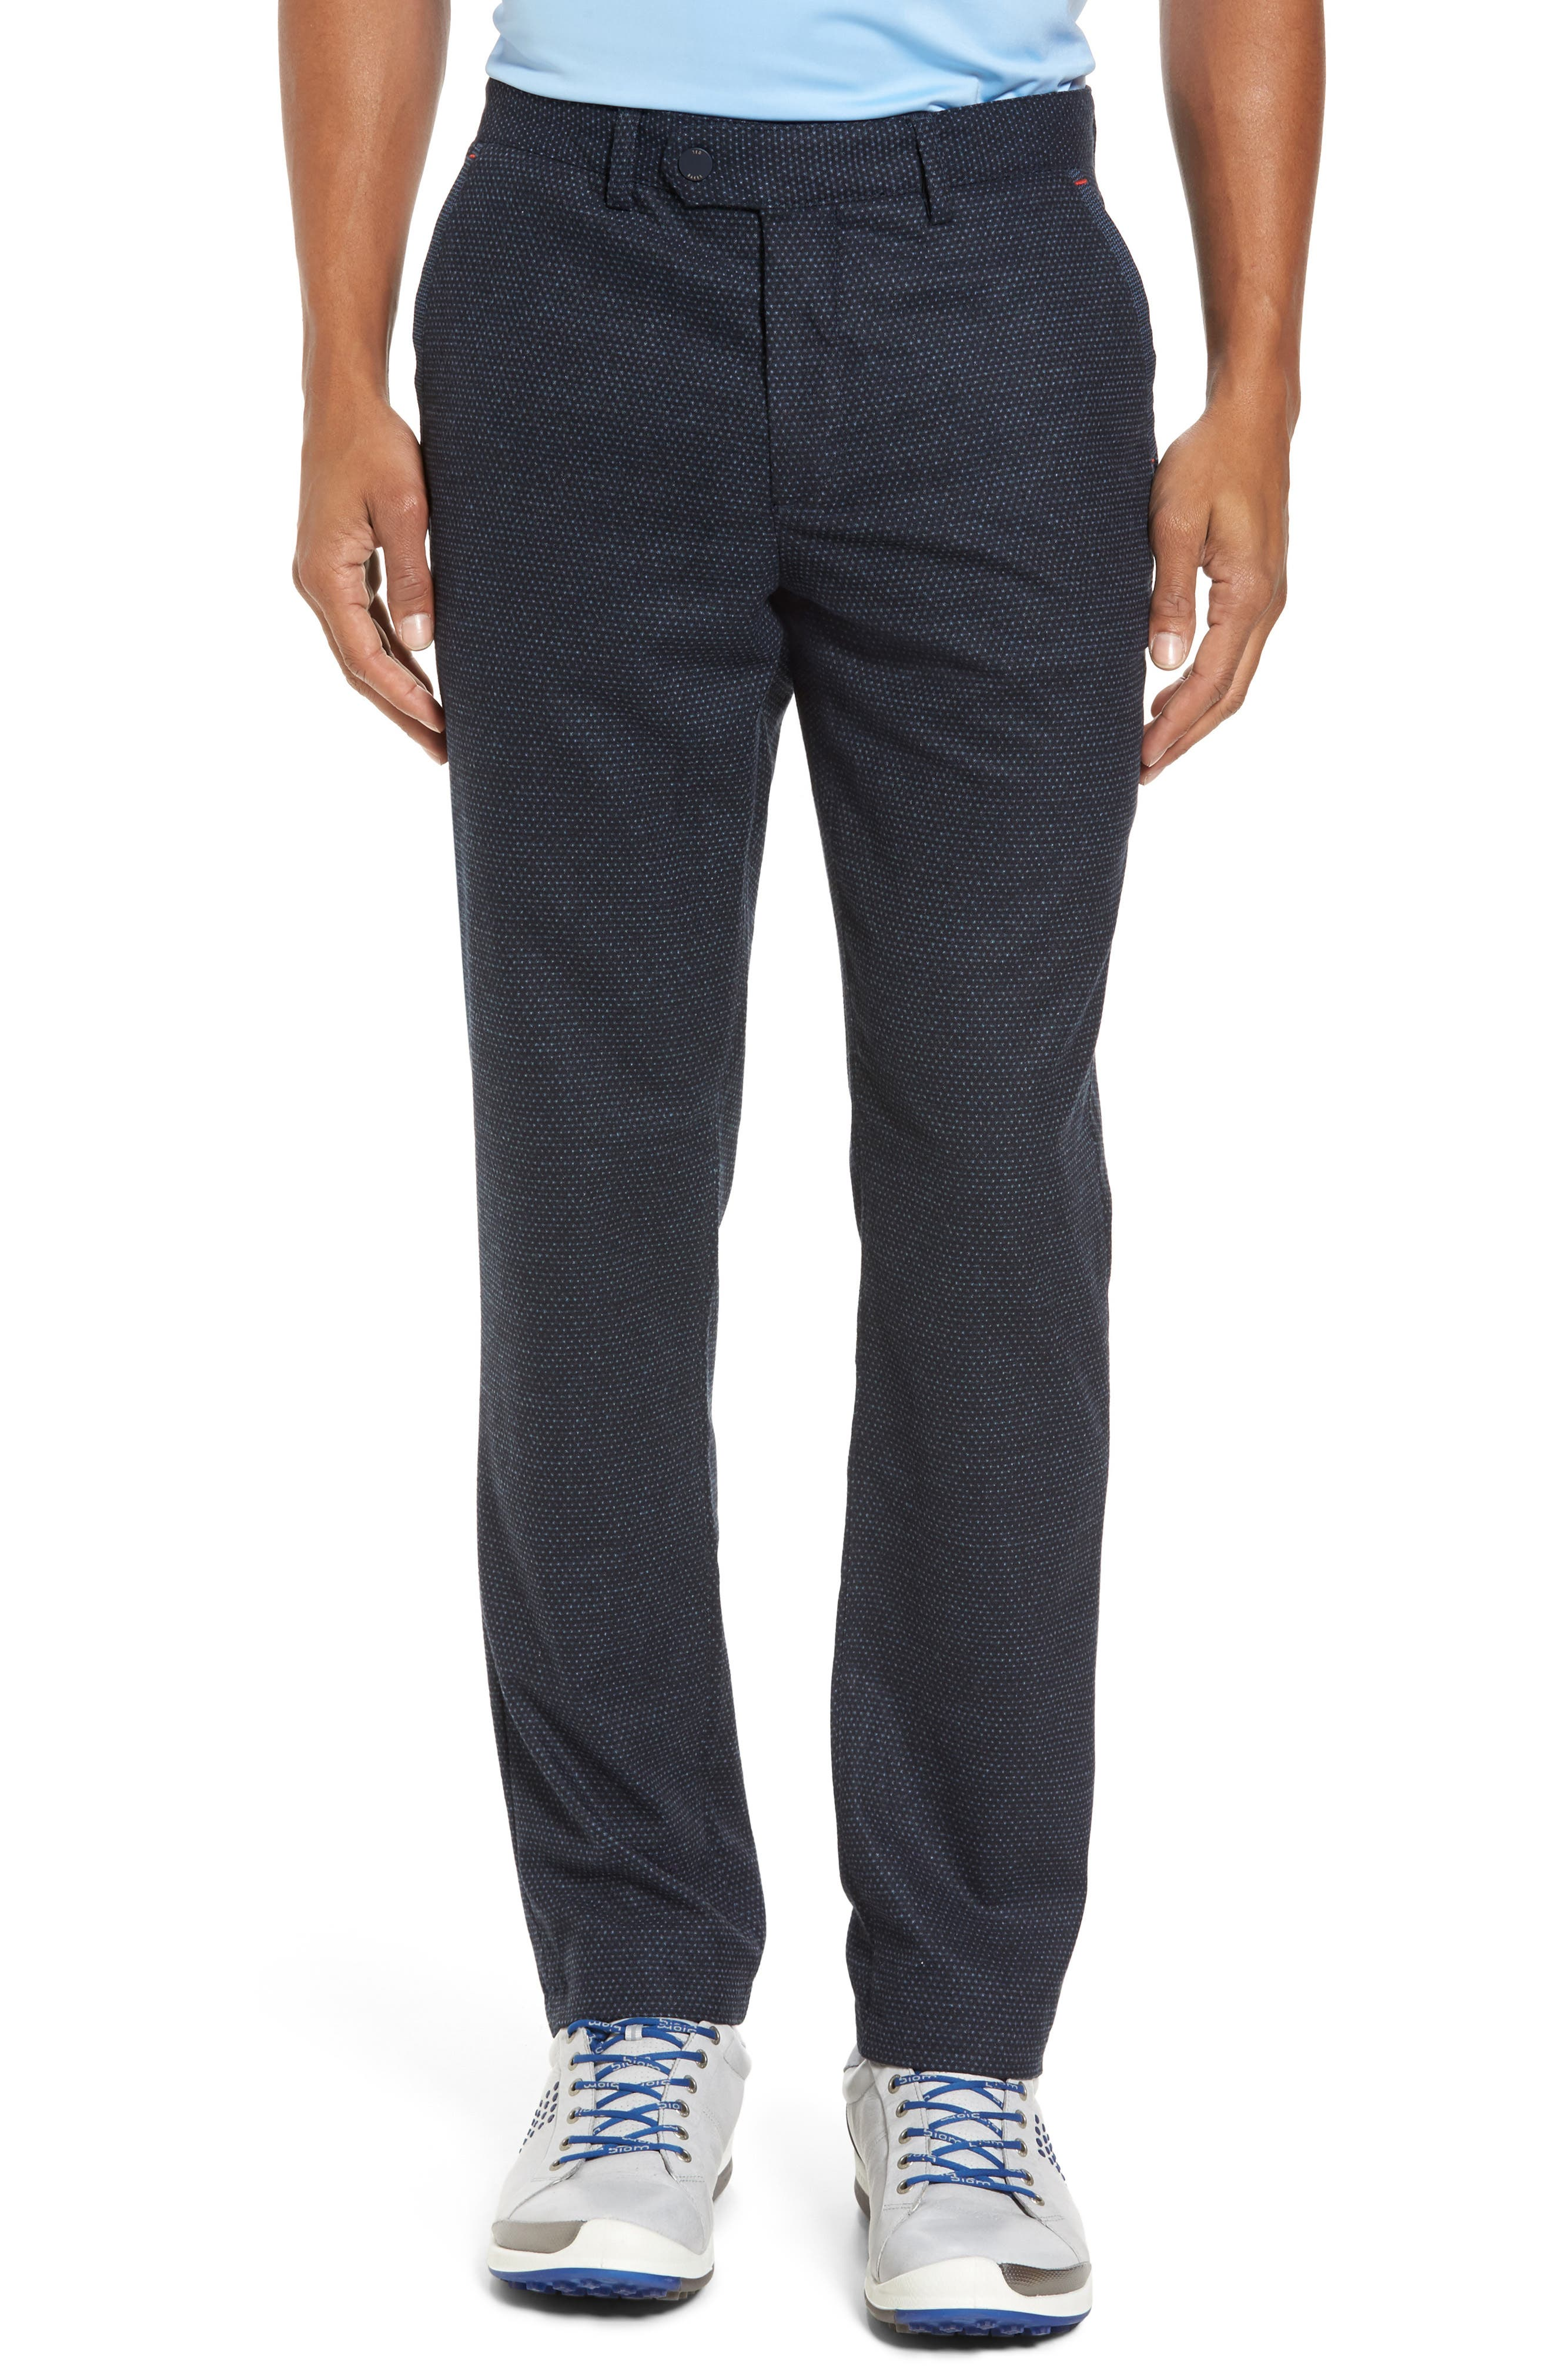 Alternate Image 1 Selected - Ted Baker London Water Resistant Golf Trousers